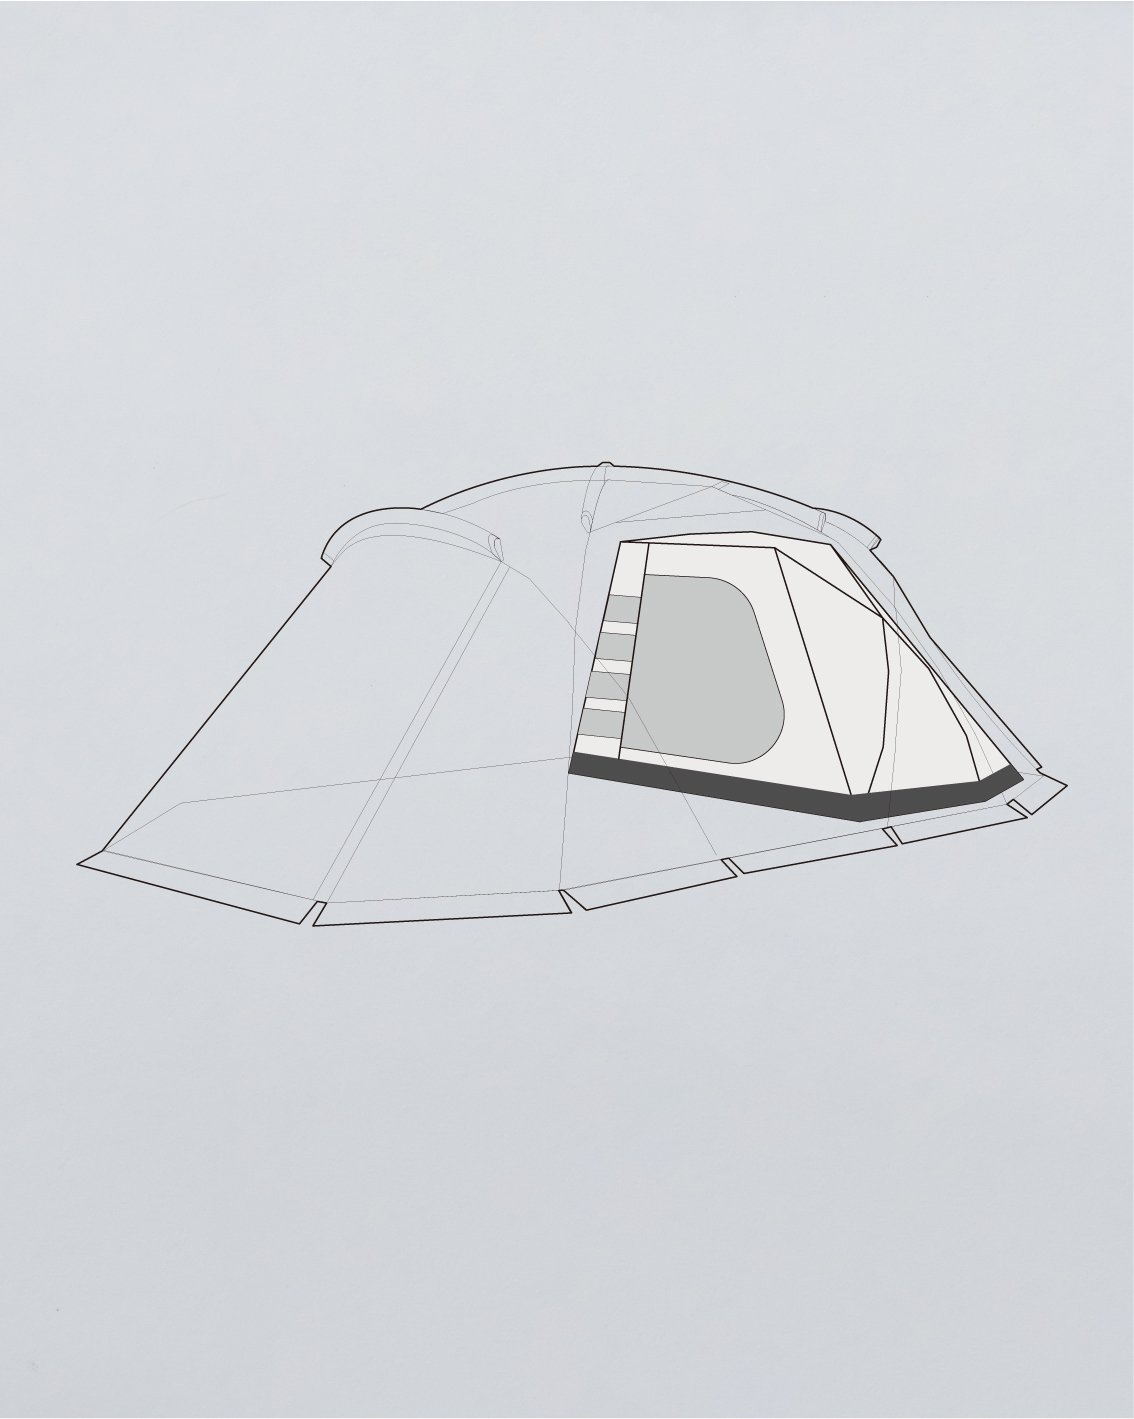 INNER TENT for ZIZ - muracodesigns